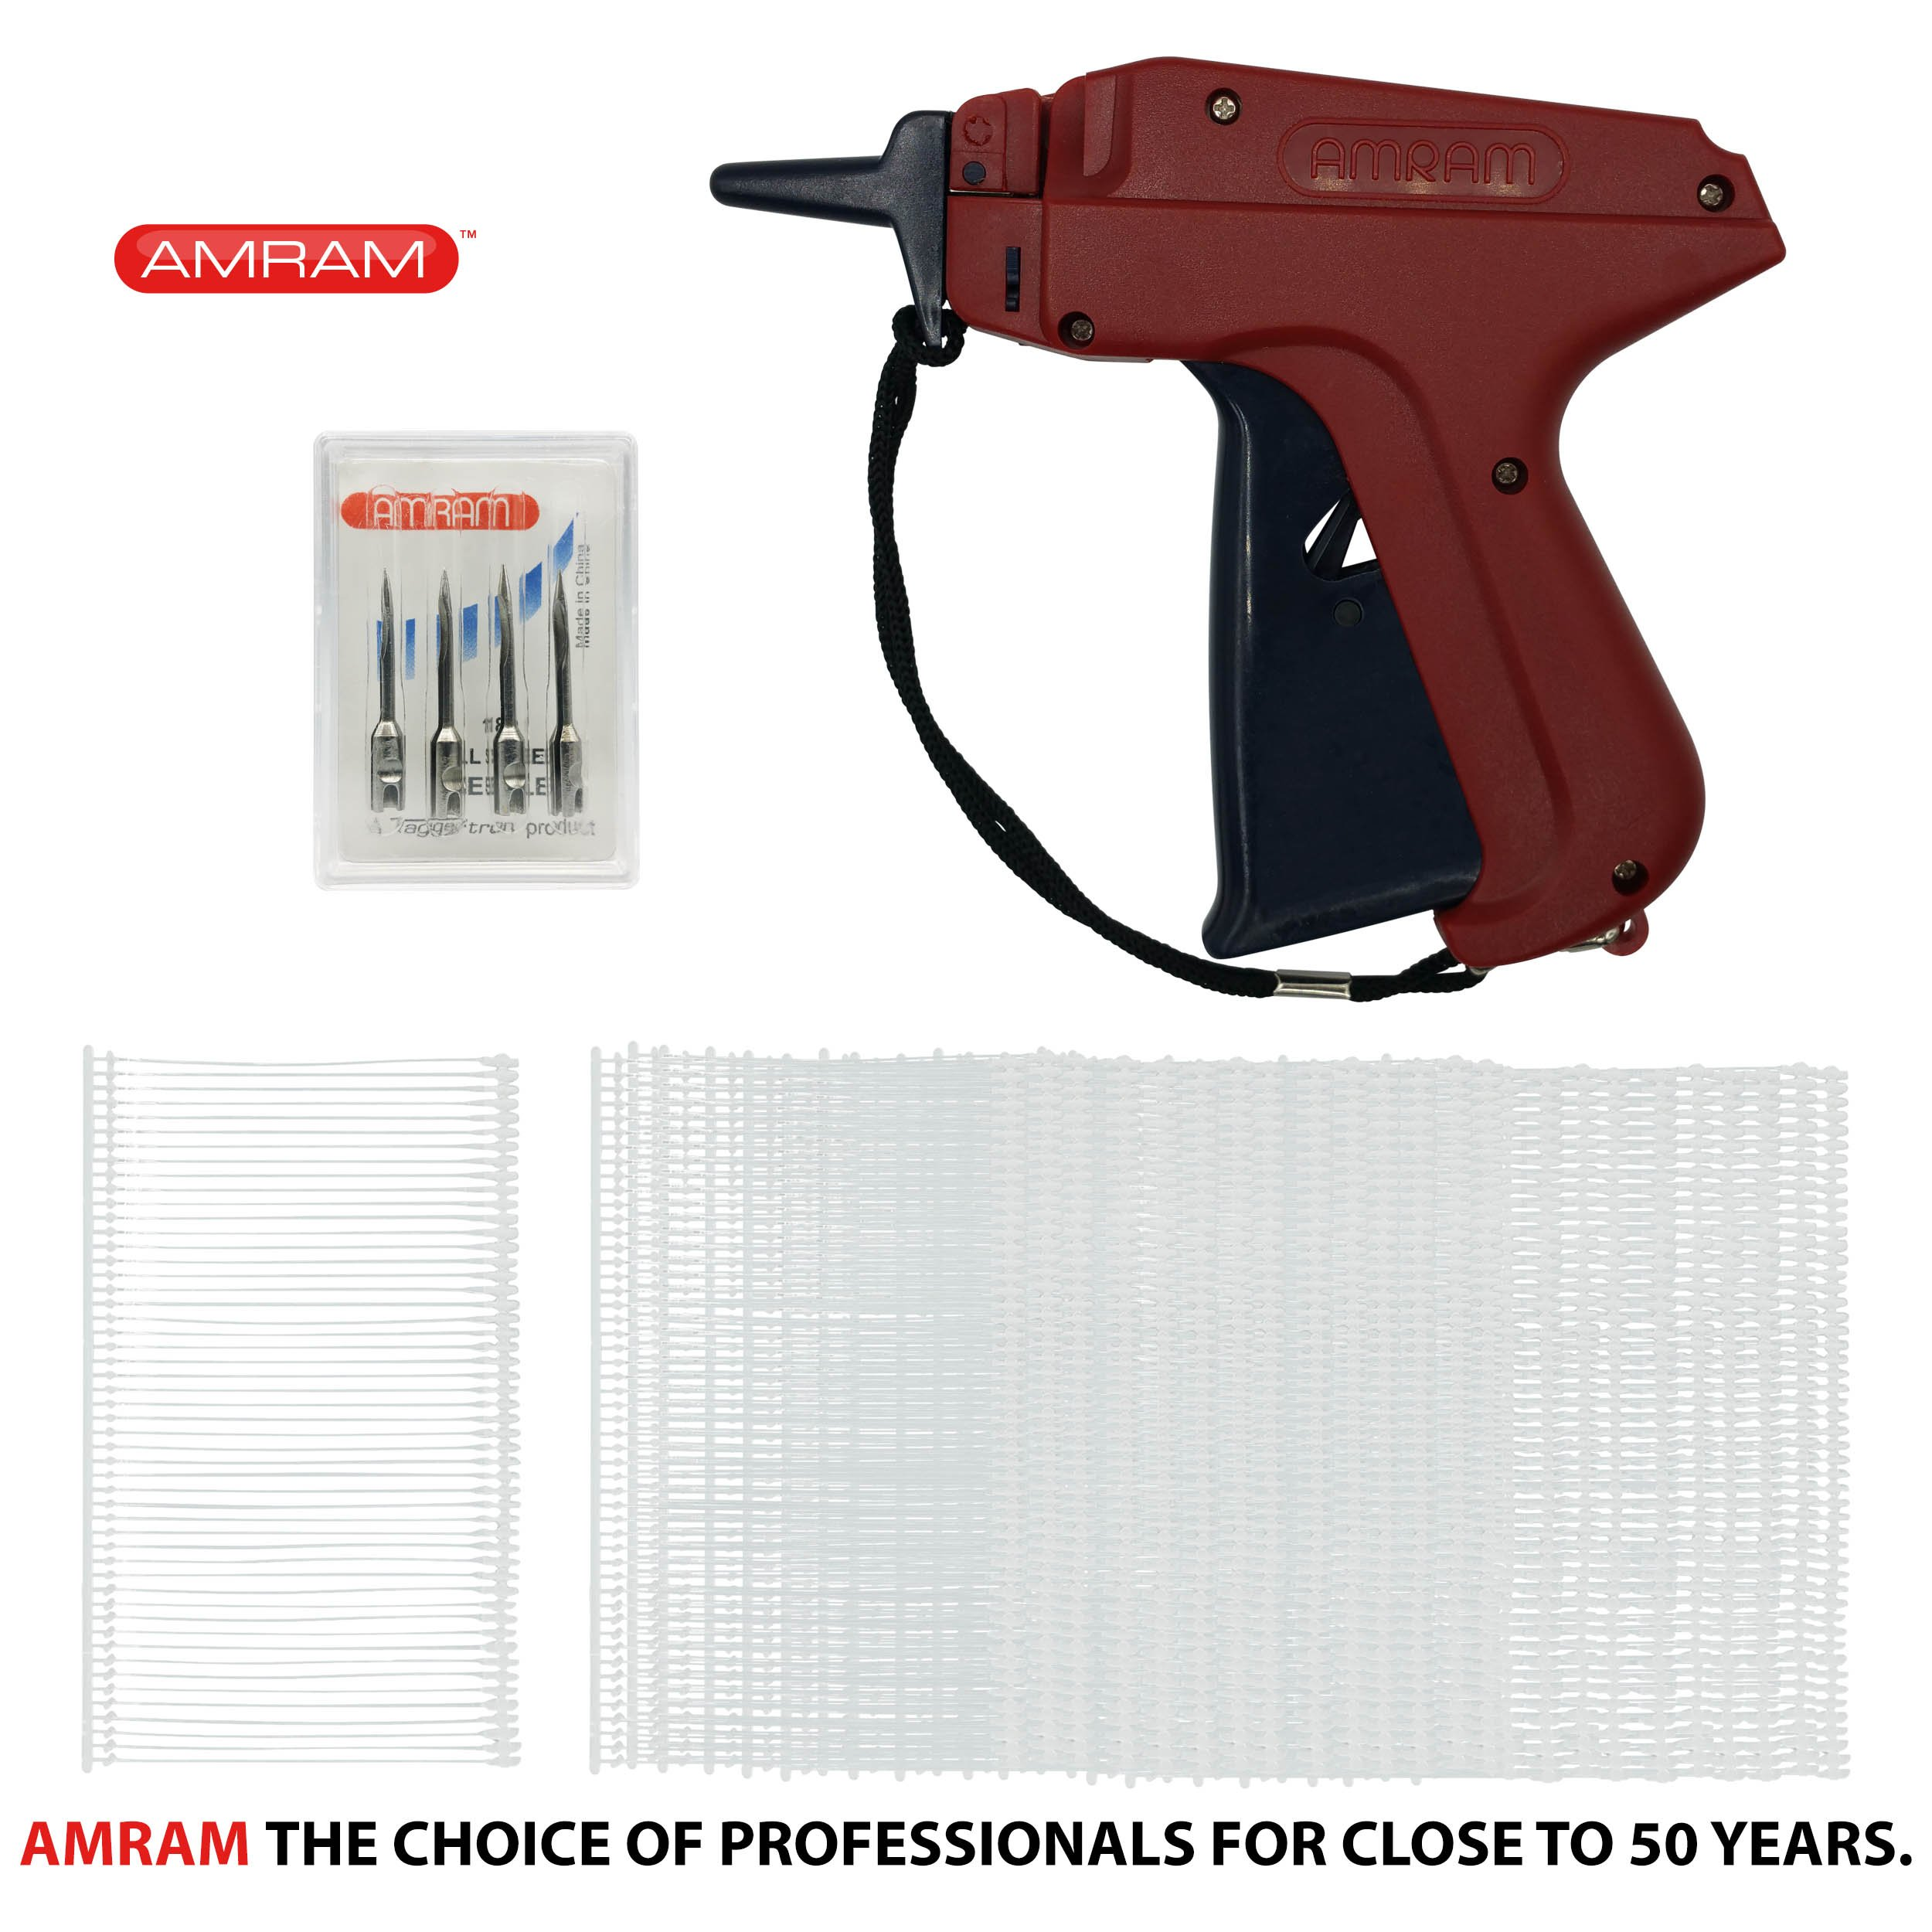 Amram Tagger Standard Tag Attaching Tagging Gun BONUS KIT with 5 Needles and 1250 2'' Standard Attachments Fasteners